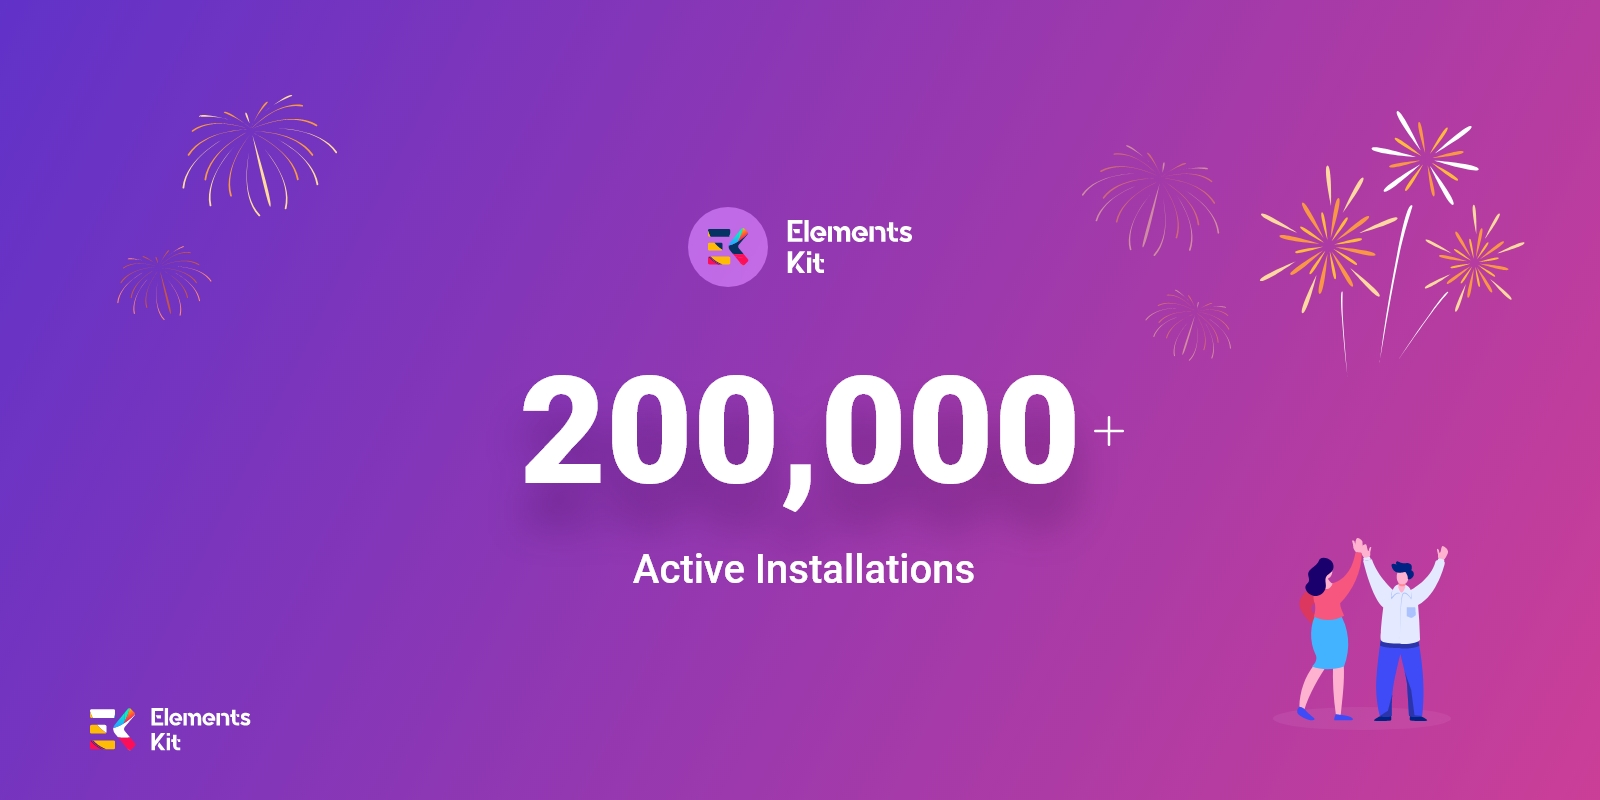 ElementsKit All in One Addons for Elementor Reaching Another Milestone: 200K+ Active Installations